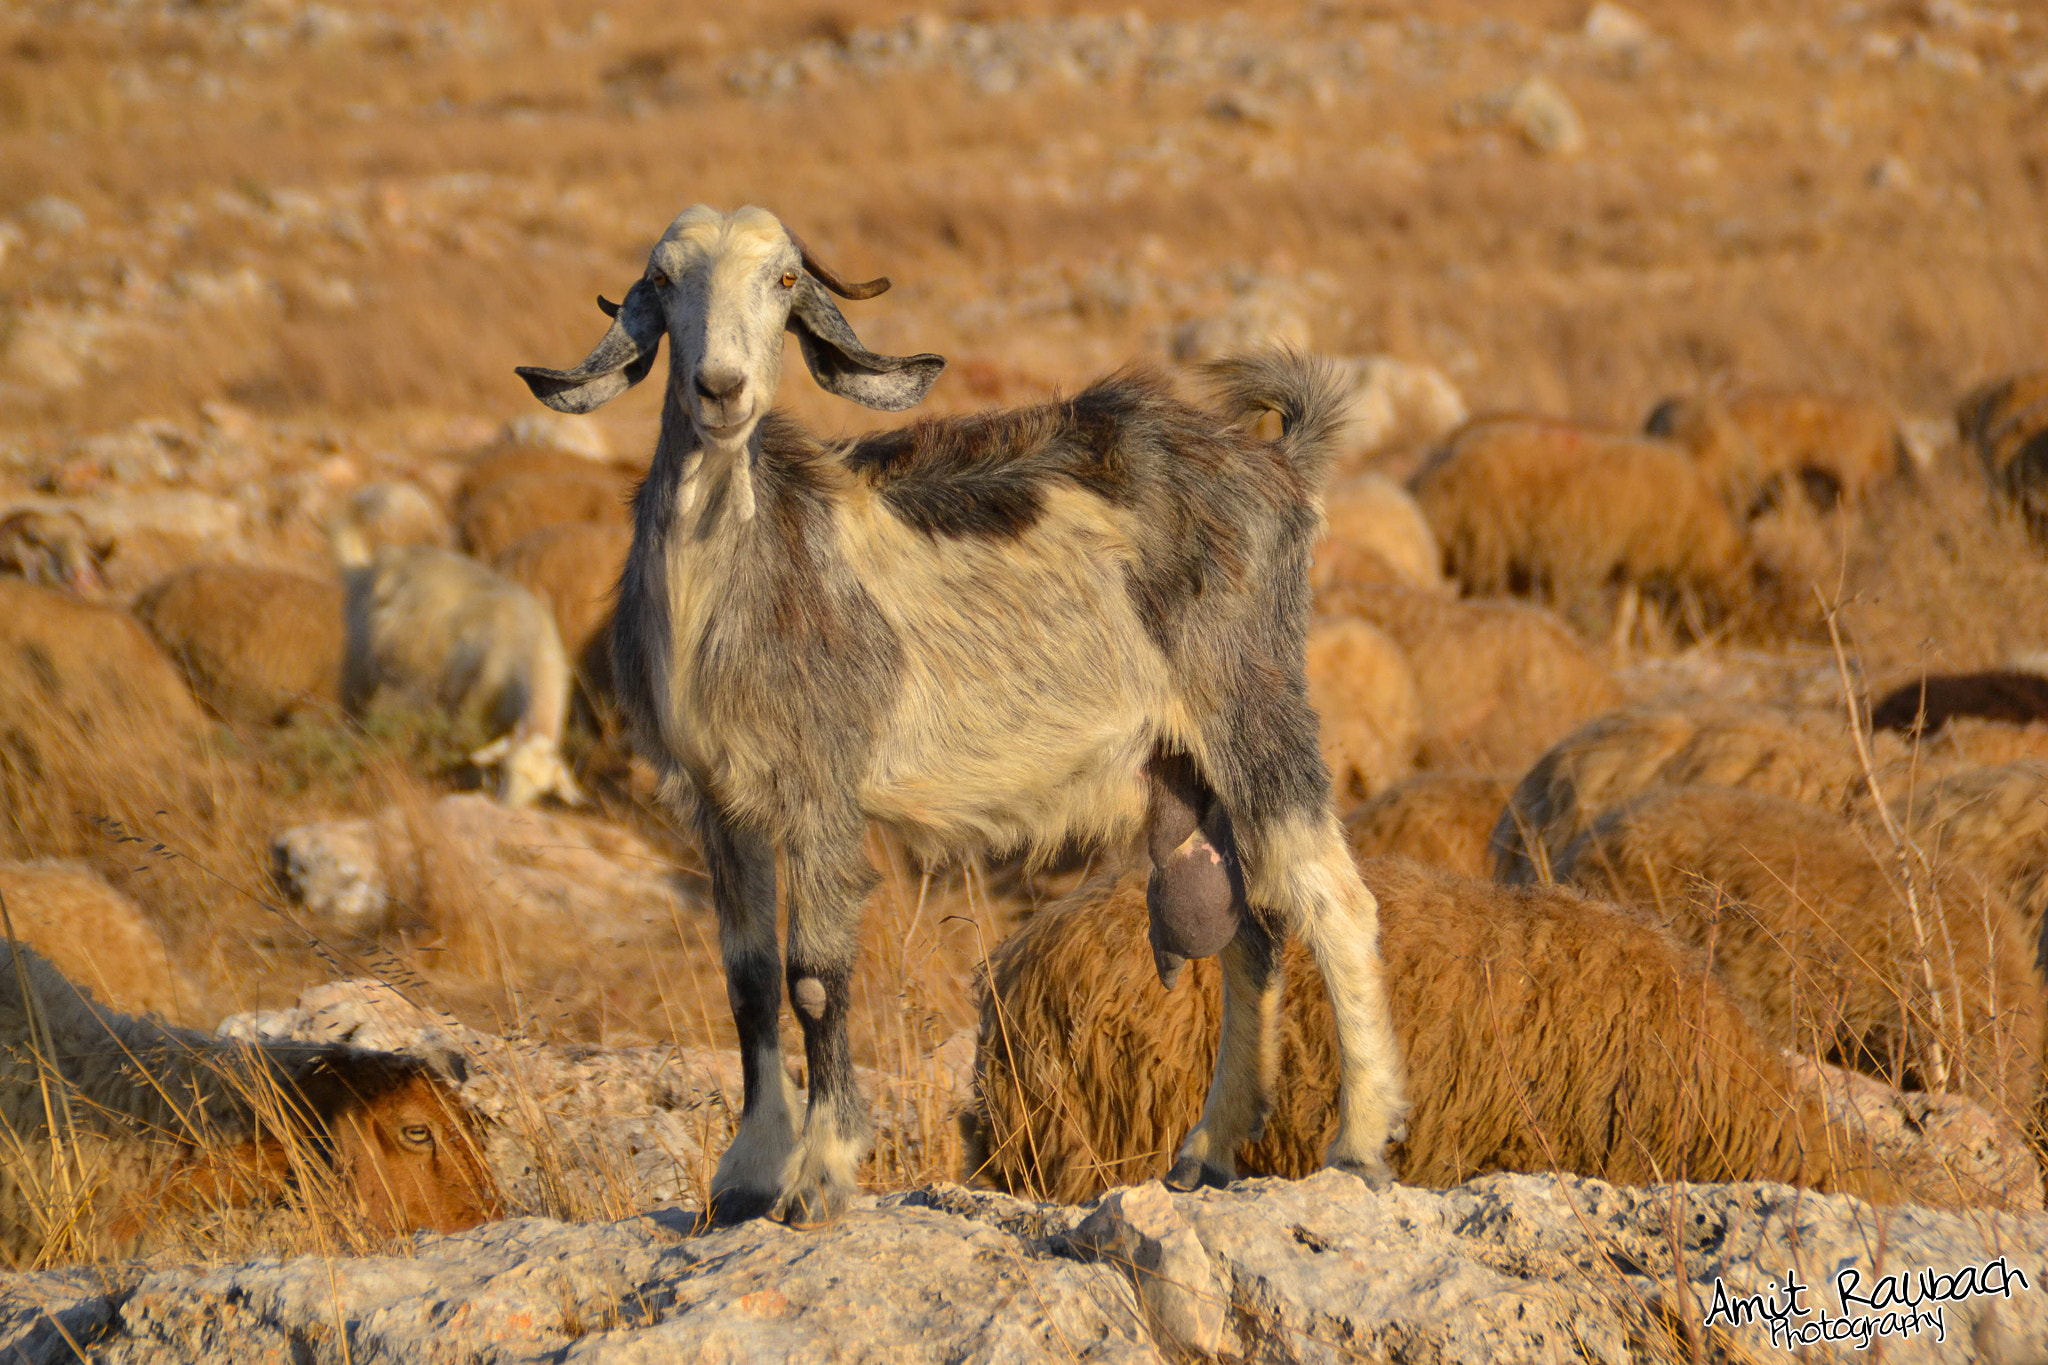 Photograph Goat by Amit Raubach on 500px